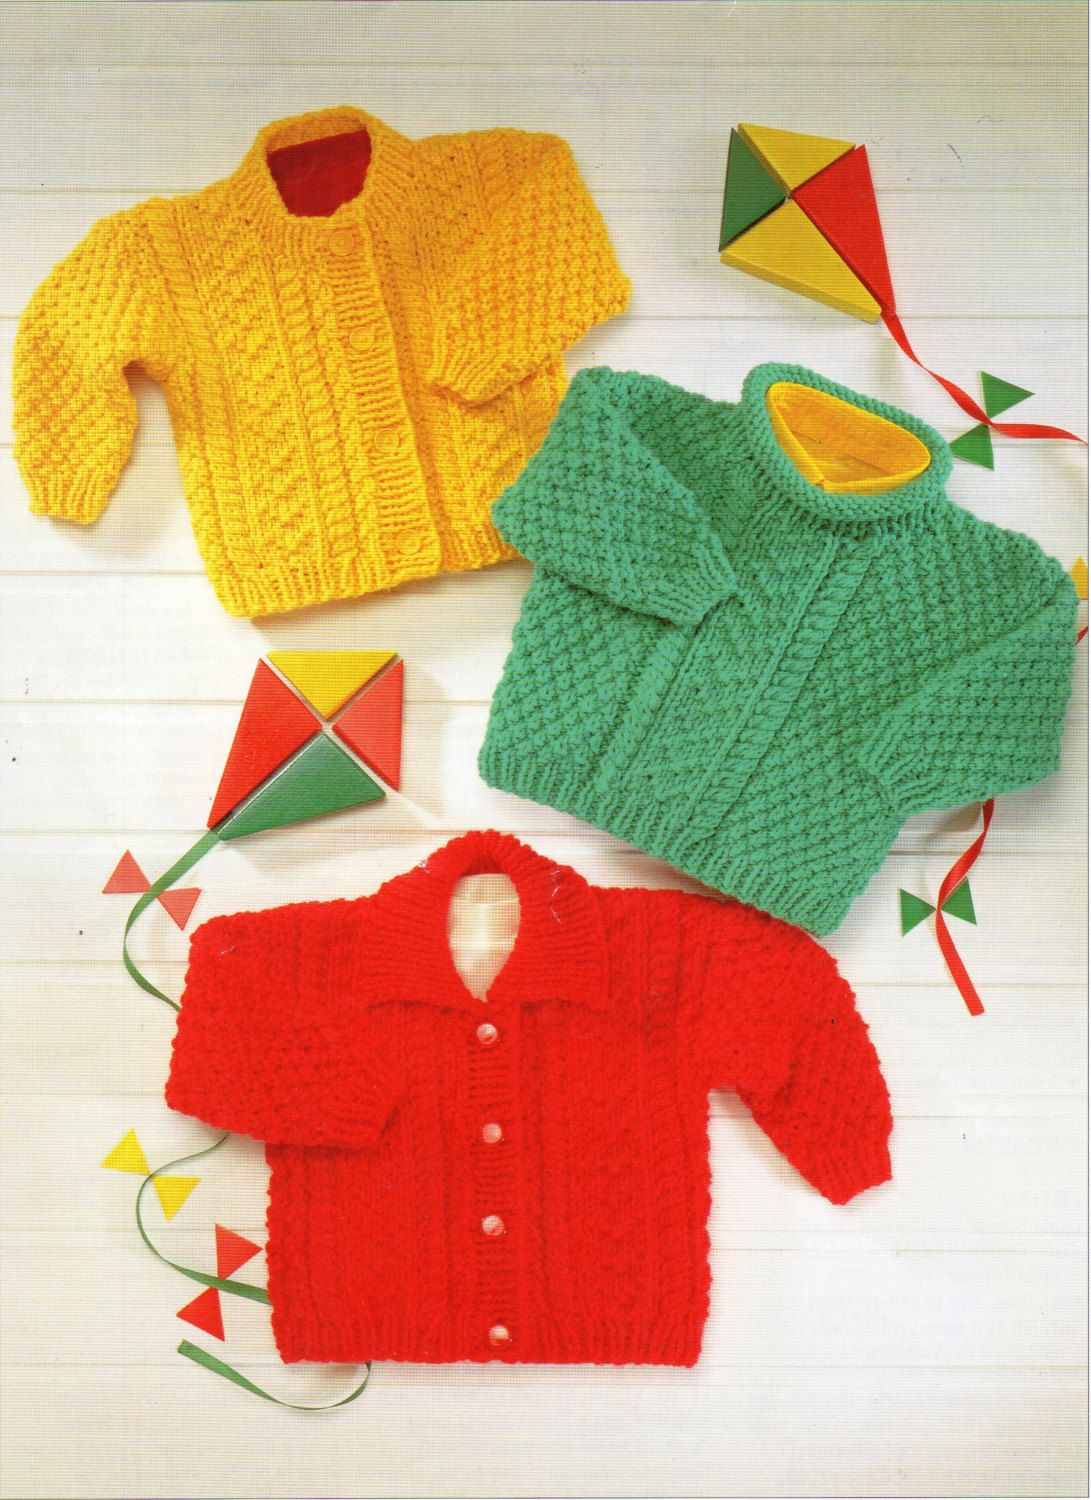 ca176cc07 baby childrens cardigans sweater knitting pattern pdf jacket with ...